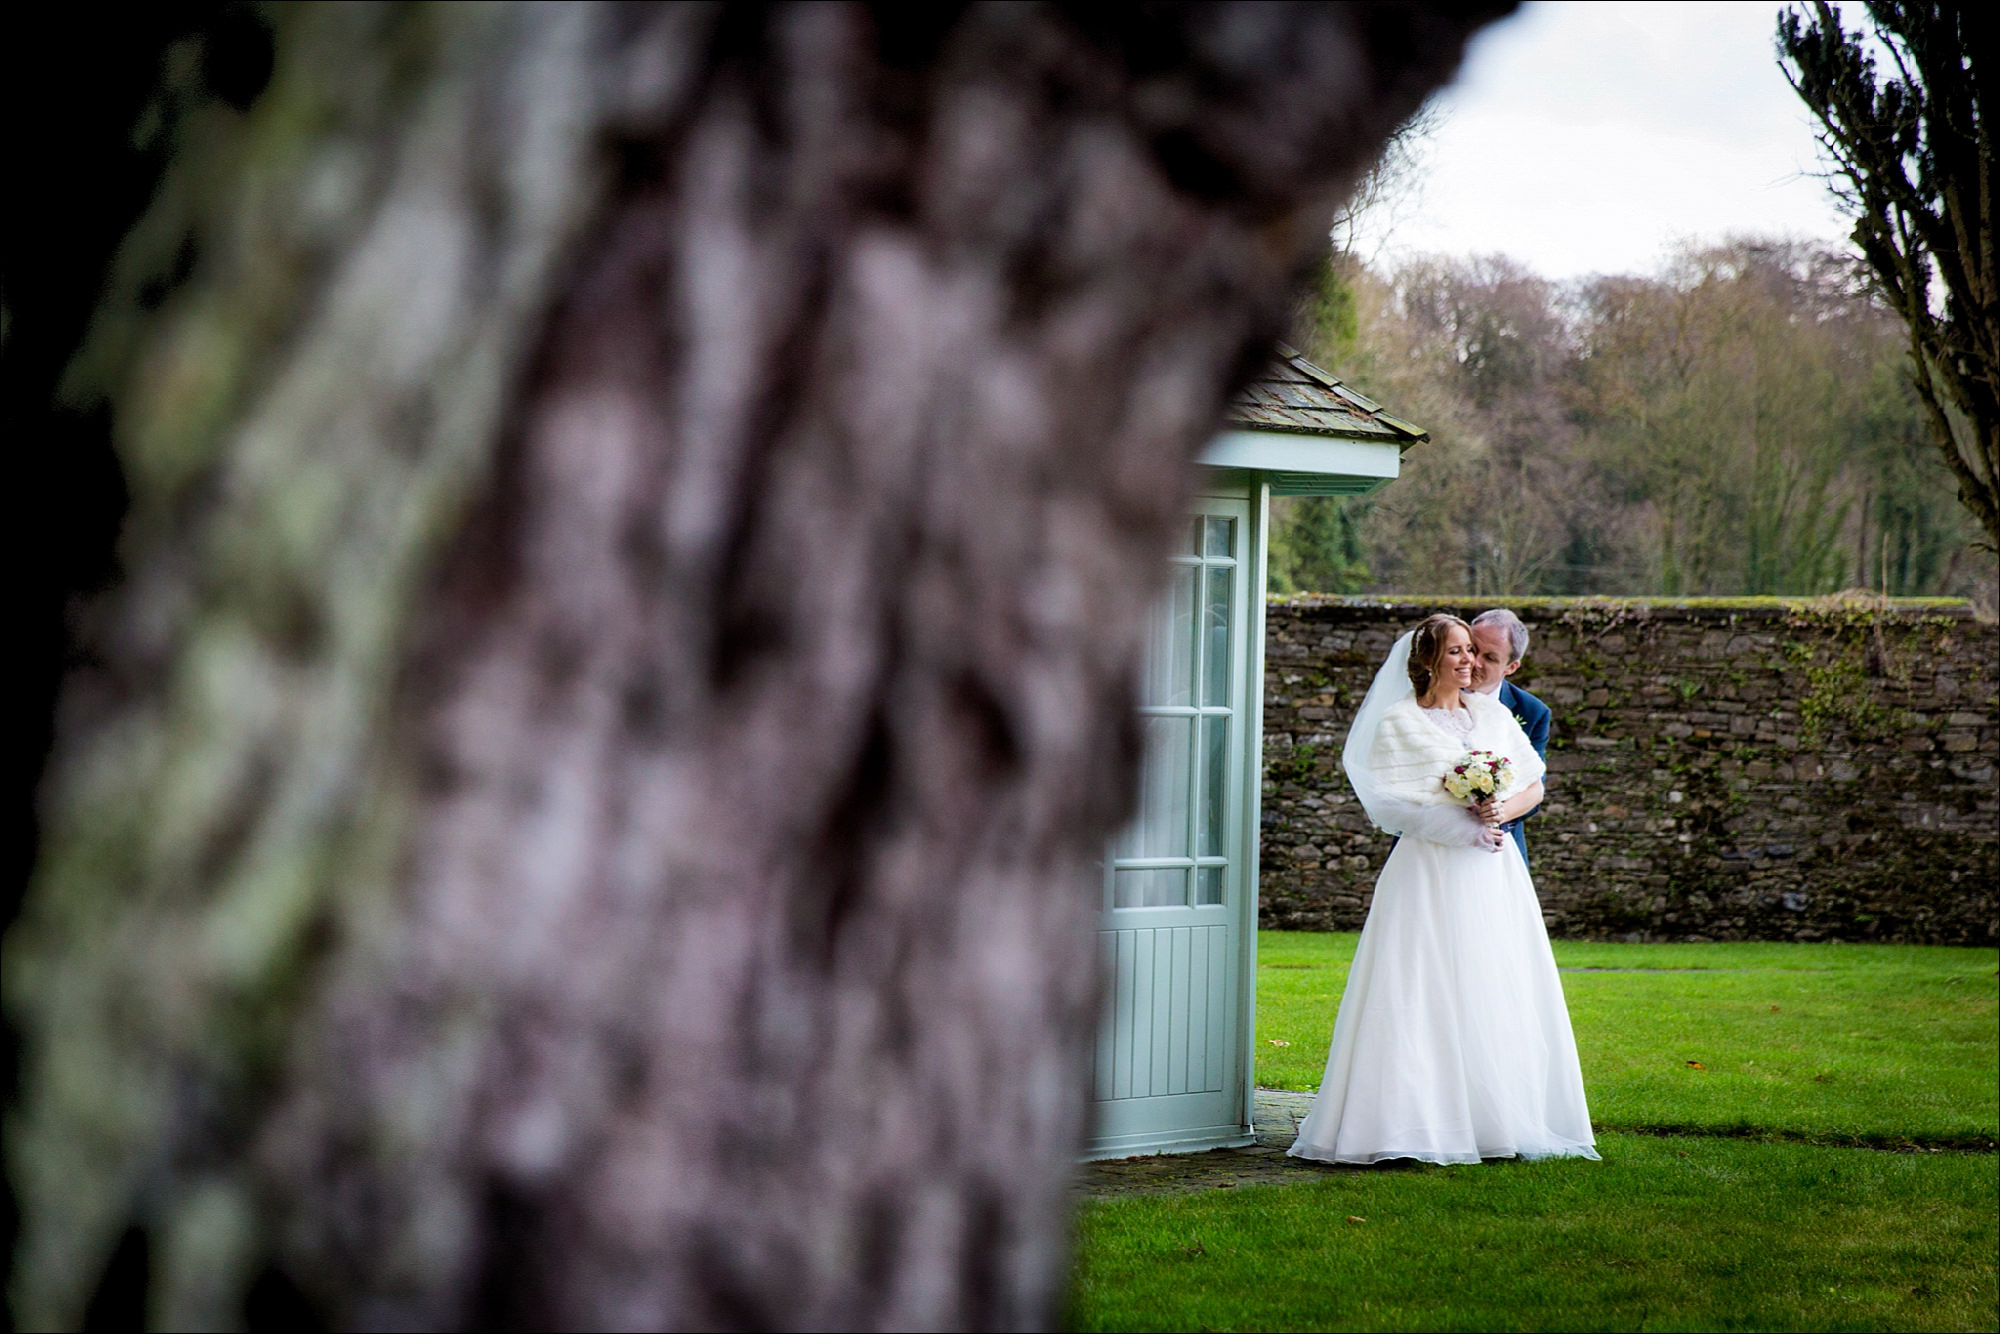 dublin wedding photographer david duignan photography tankardstown weddings slane rathfeigh church ireland 0035